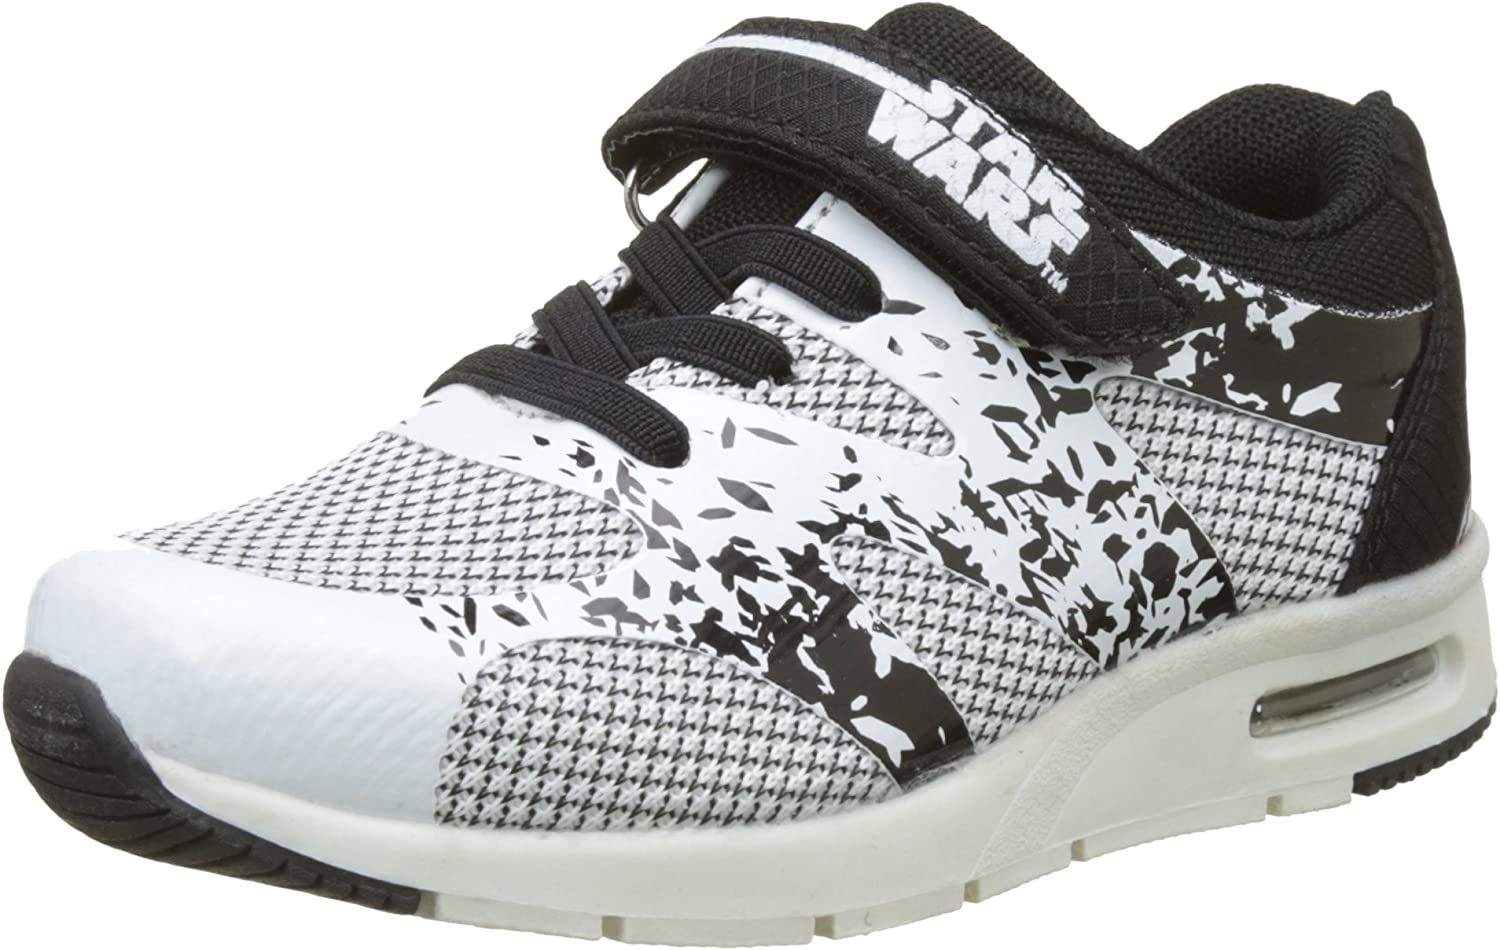 Star Wars Boys S Low Sneakers Trainers